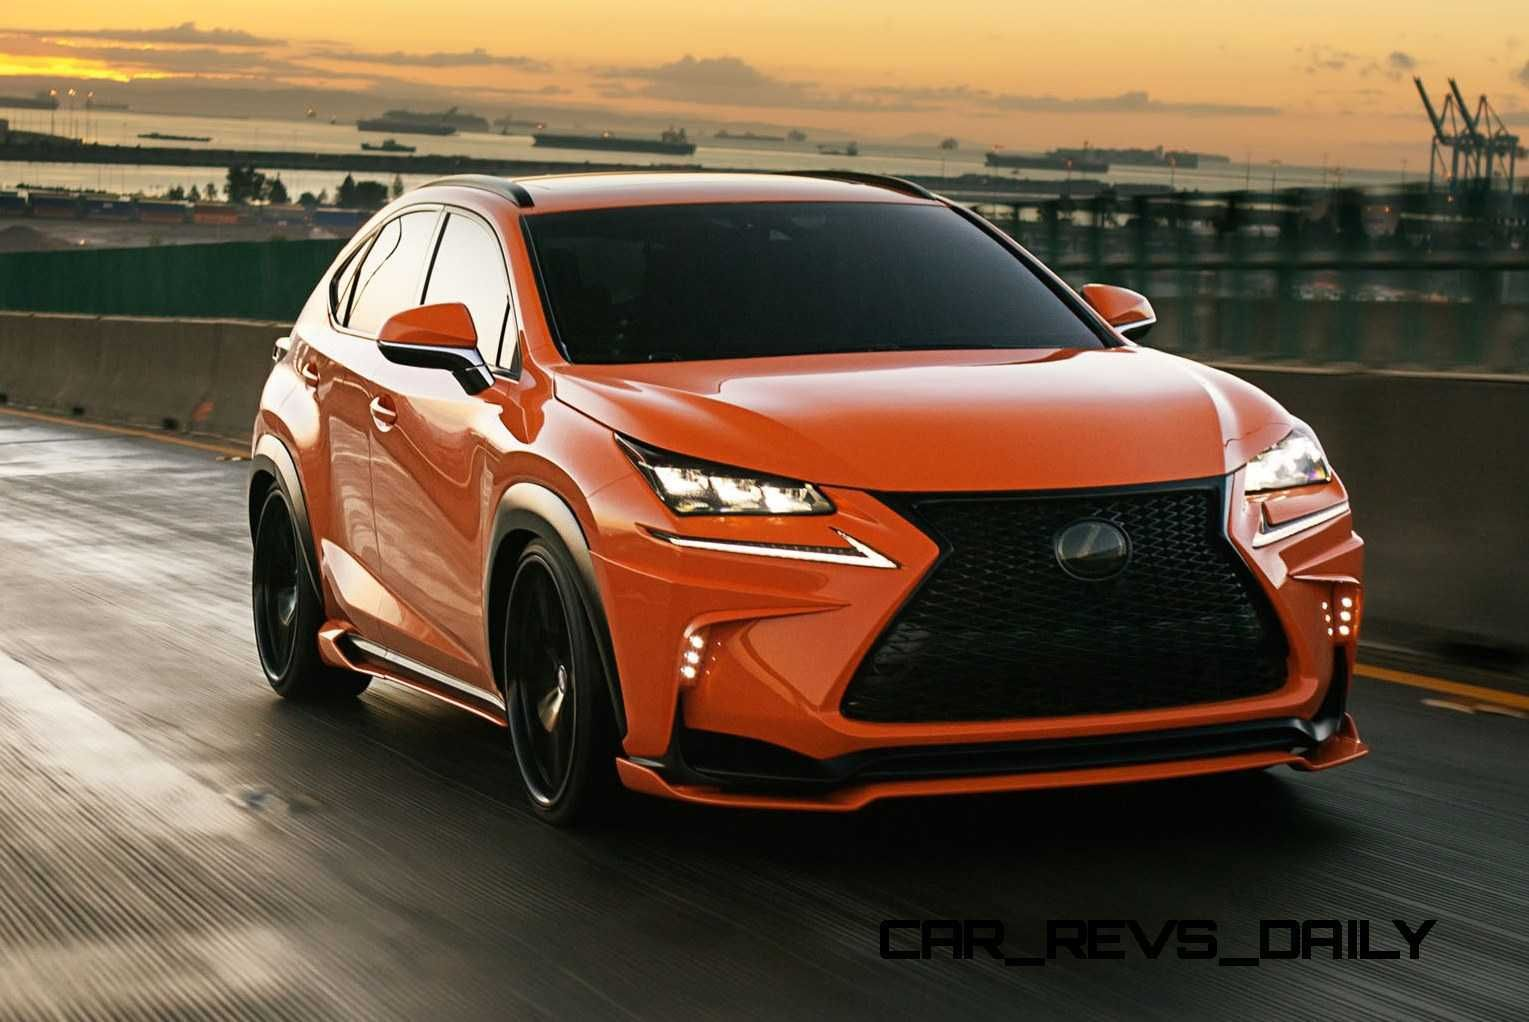 2015 Lexus NX200t F Sport and RC350 Chrome Wrap by 360